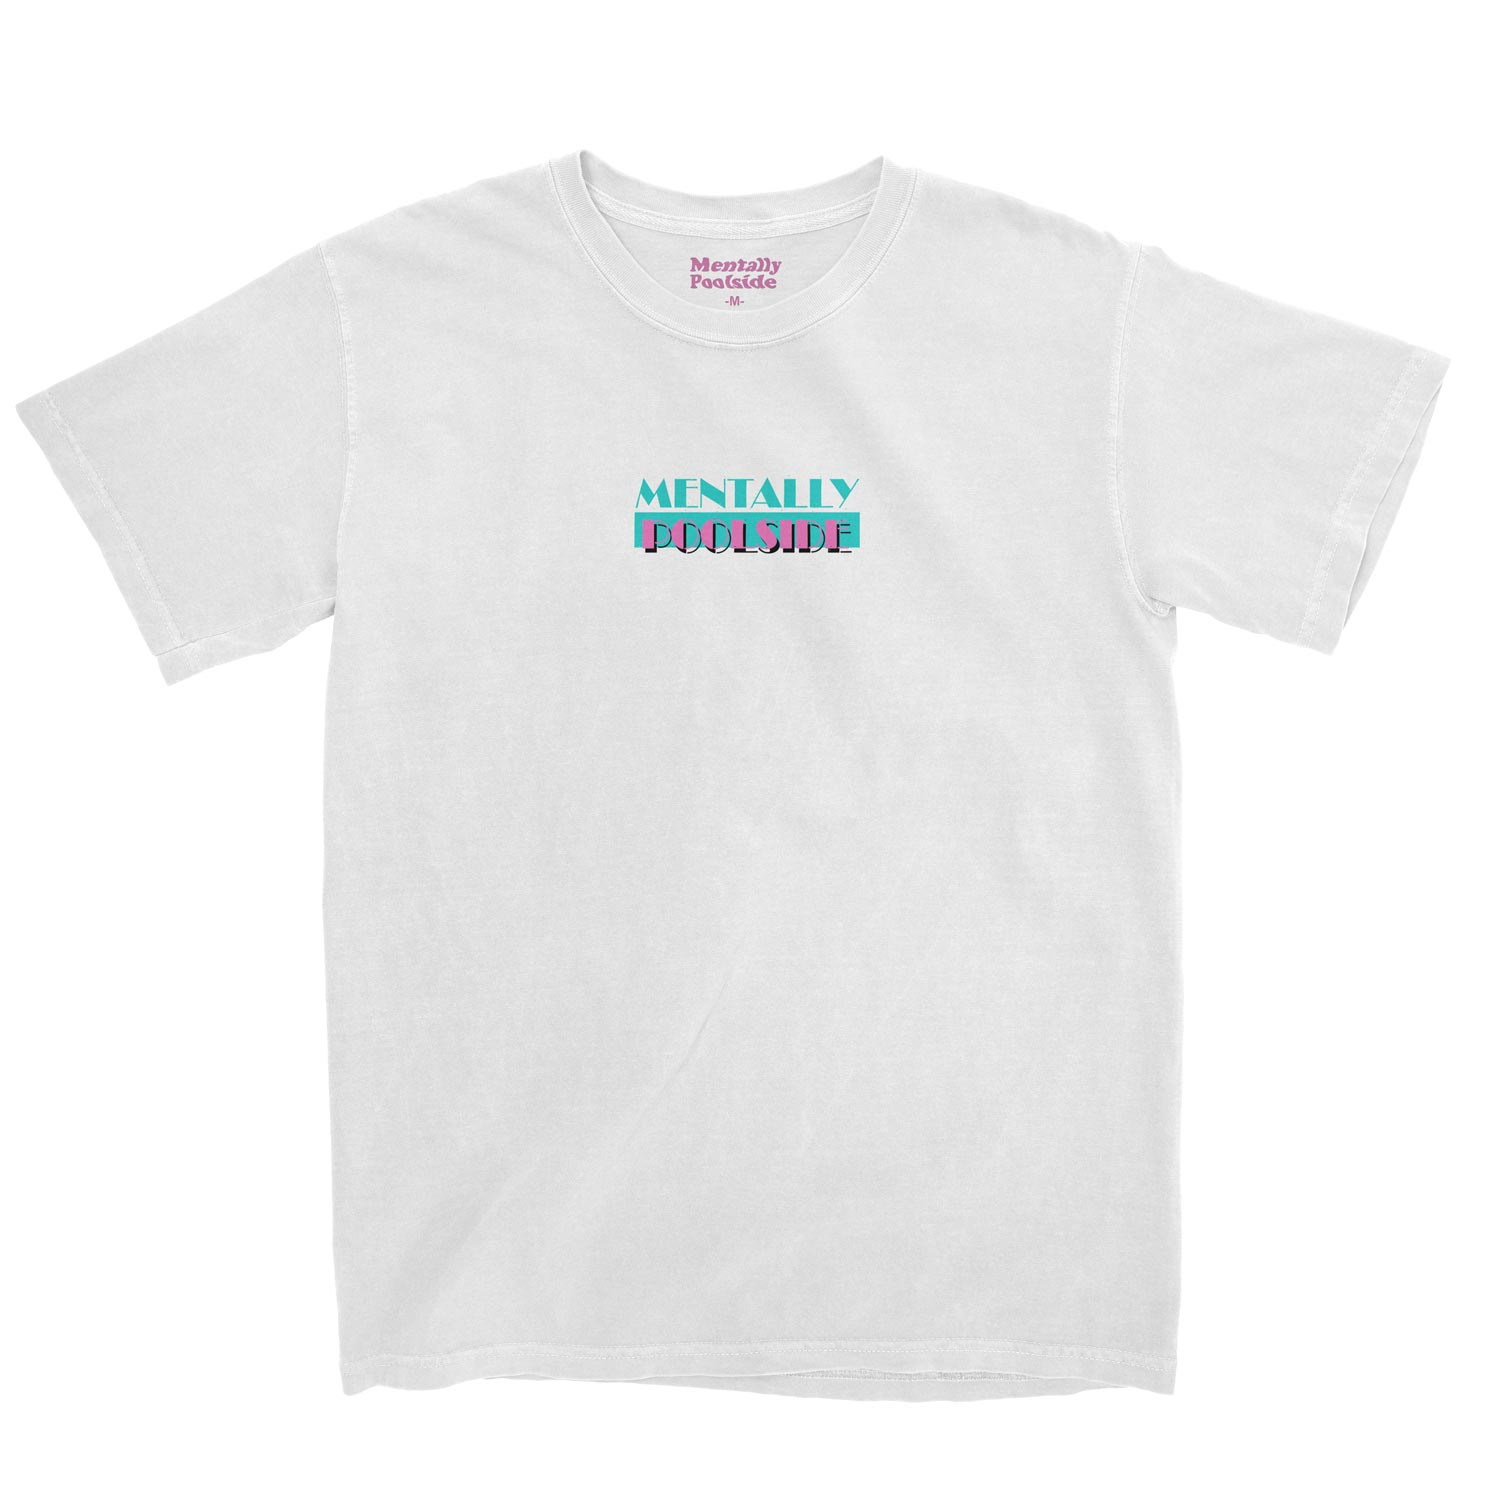 Poolside Vice-Tee shirt-Comfort colors-White-S-Mentally Poolside